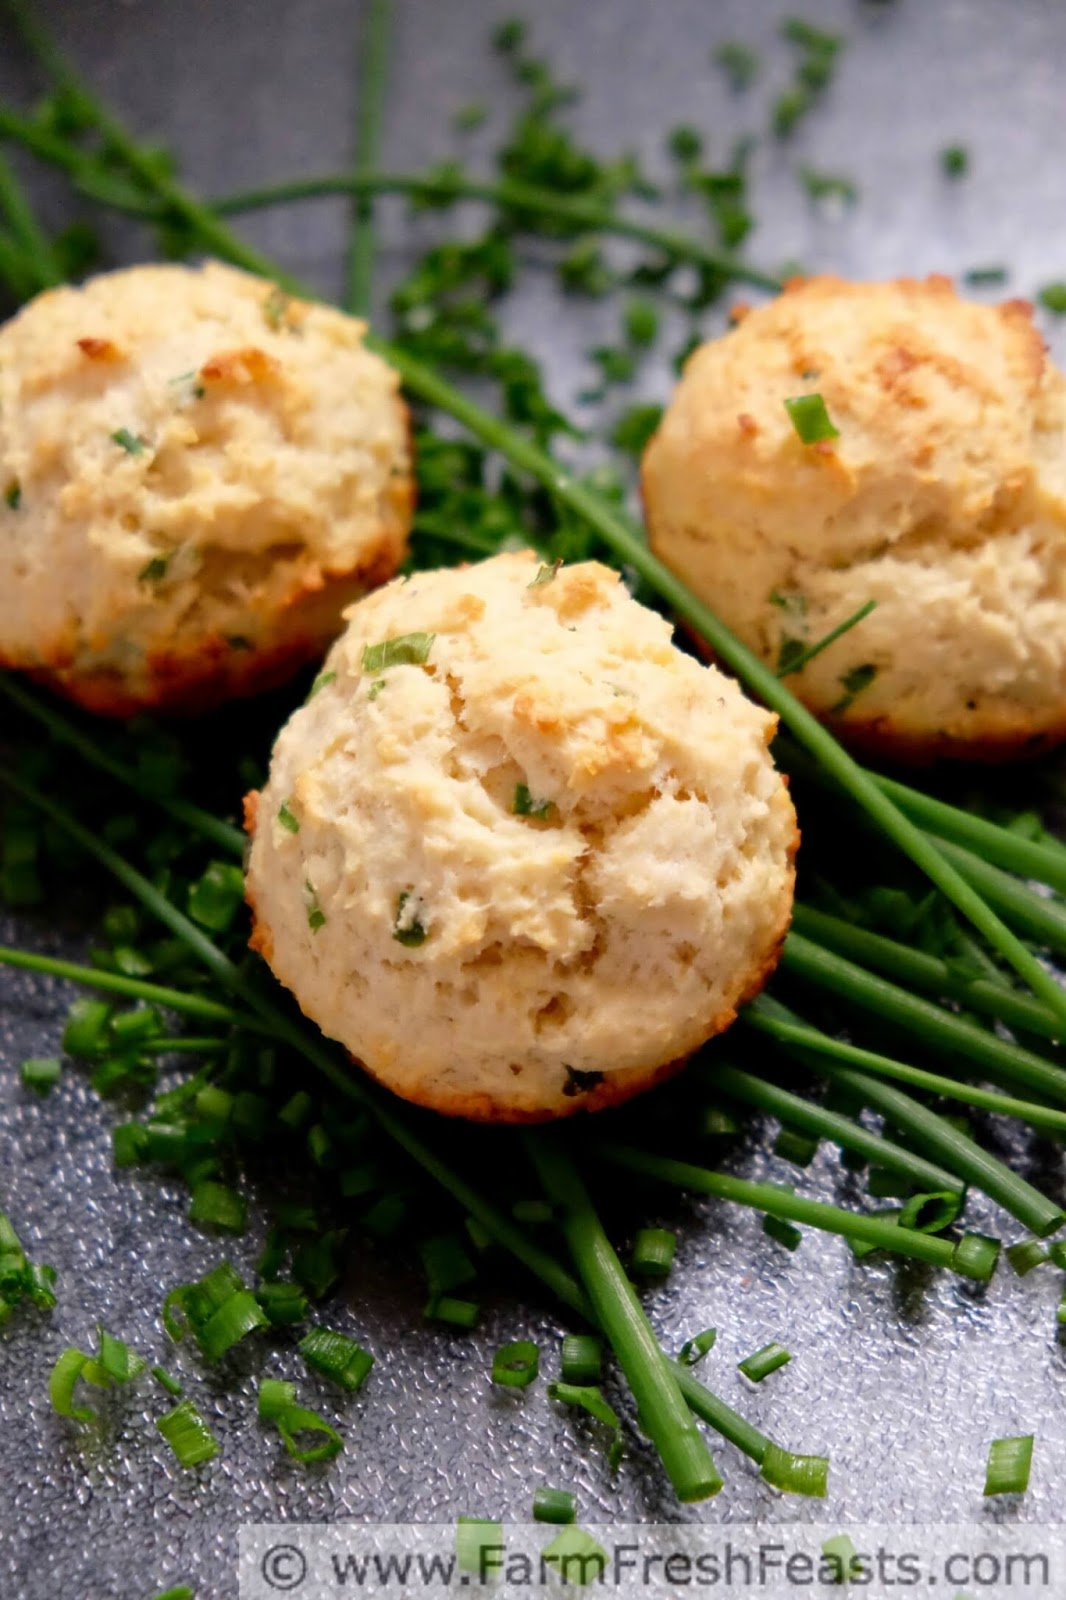 Creamy Ricotta Cheese And Fresh Chives Are The Highlight Of These Savory Muffins Adding Potato